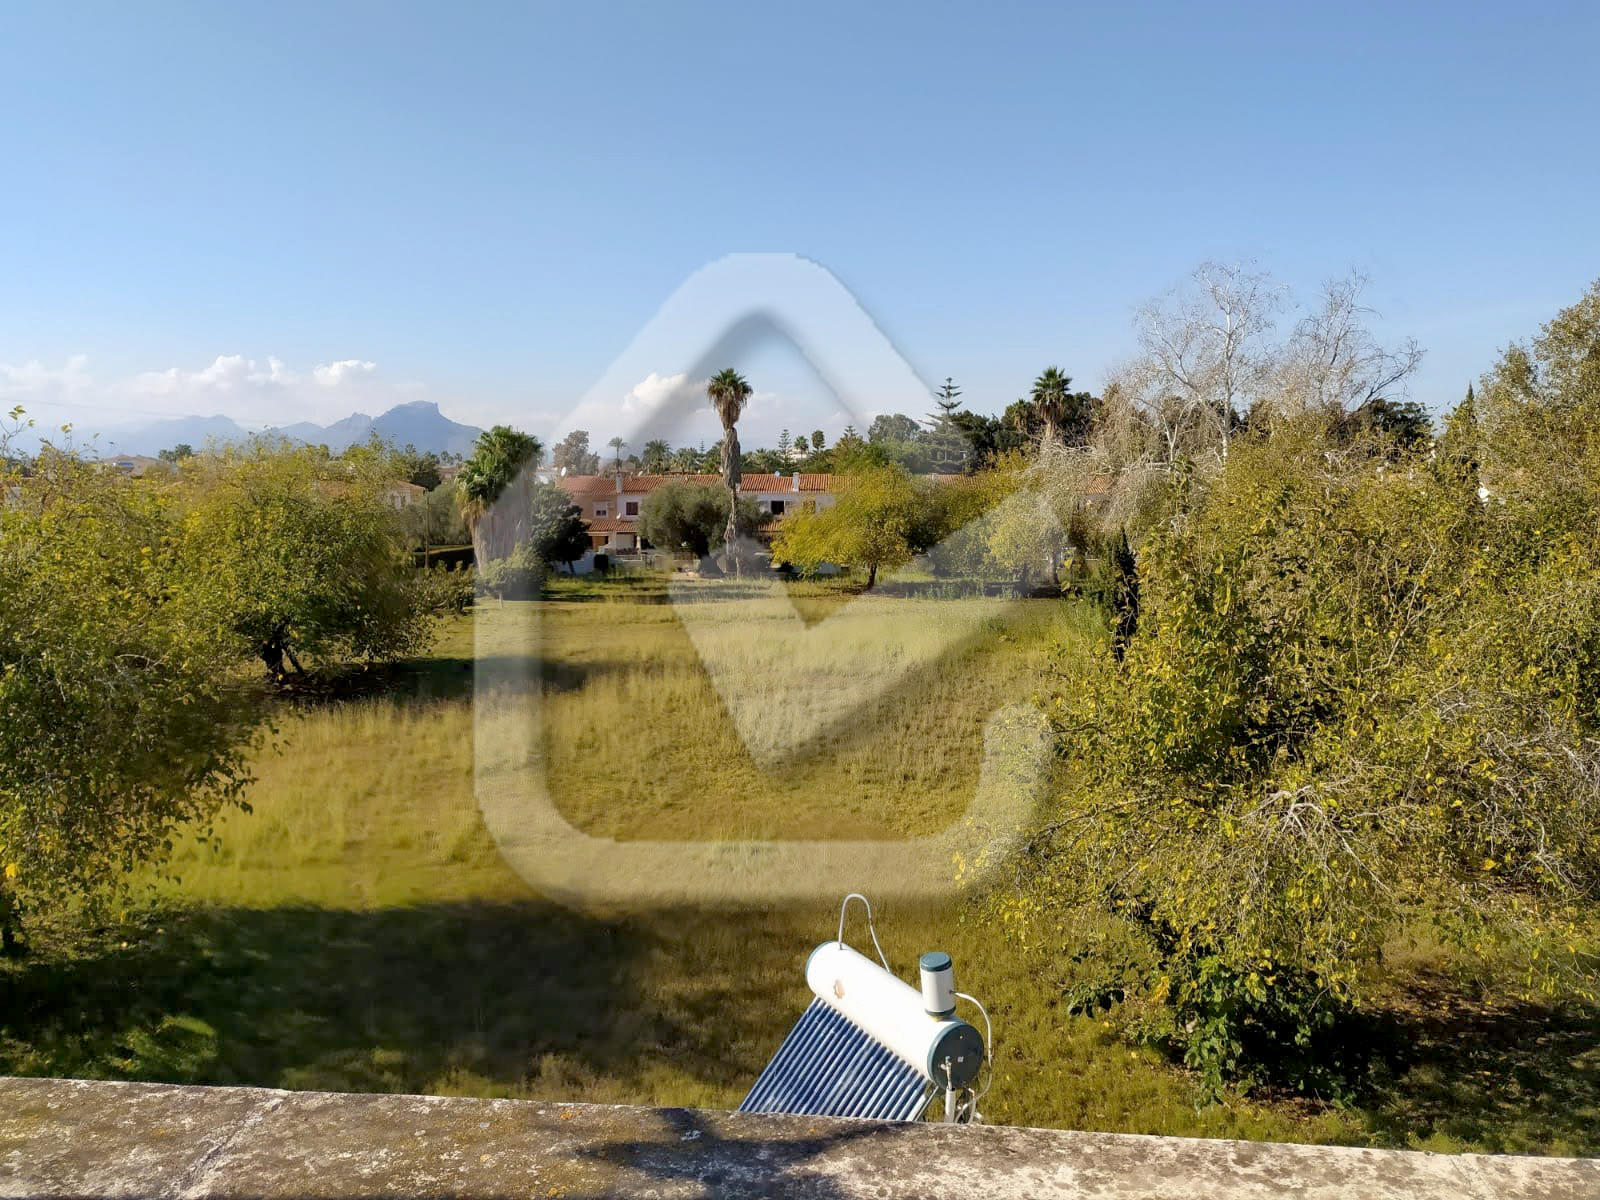 Photo  number 42: Villa in Sale in Denia, Area Marinas, Sector Bassetes-bovetes. Ref. 5-36-14957